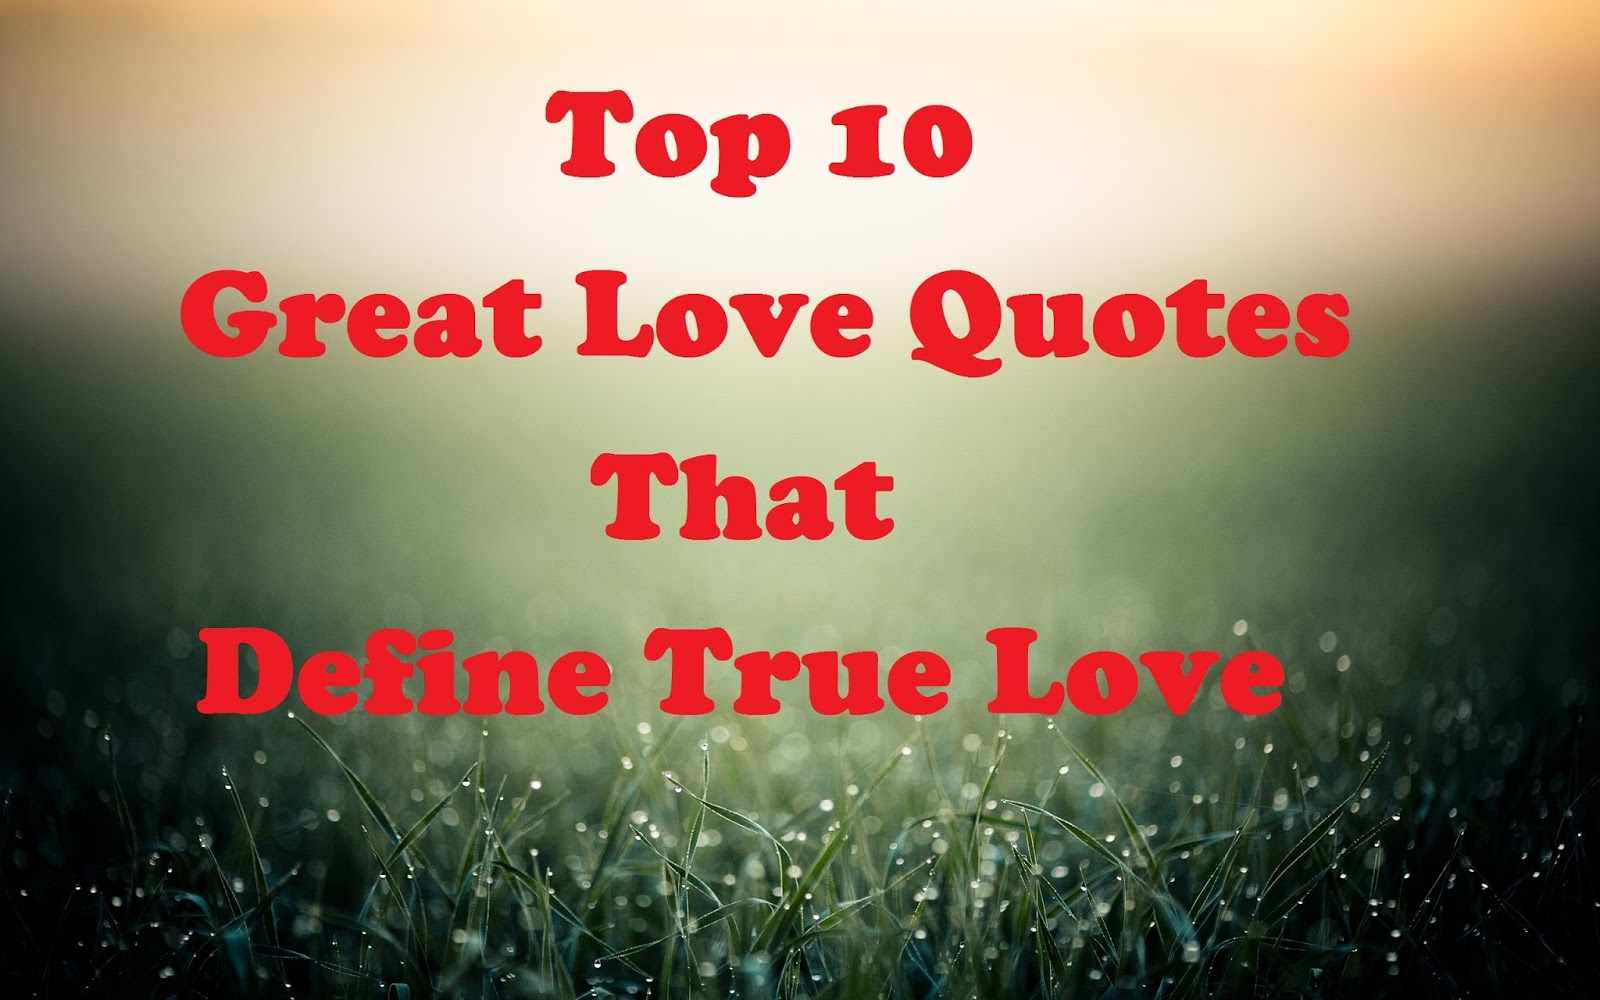 Great Love Quotes Impressive Best 10 Great Love Quotes « Sarkari Patra  Sarkari Job Free Job